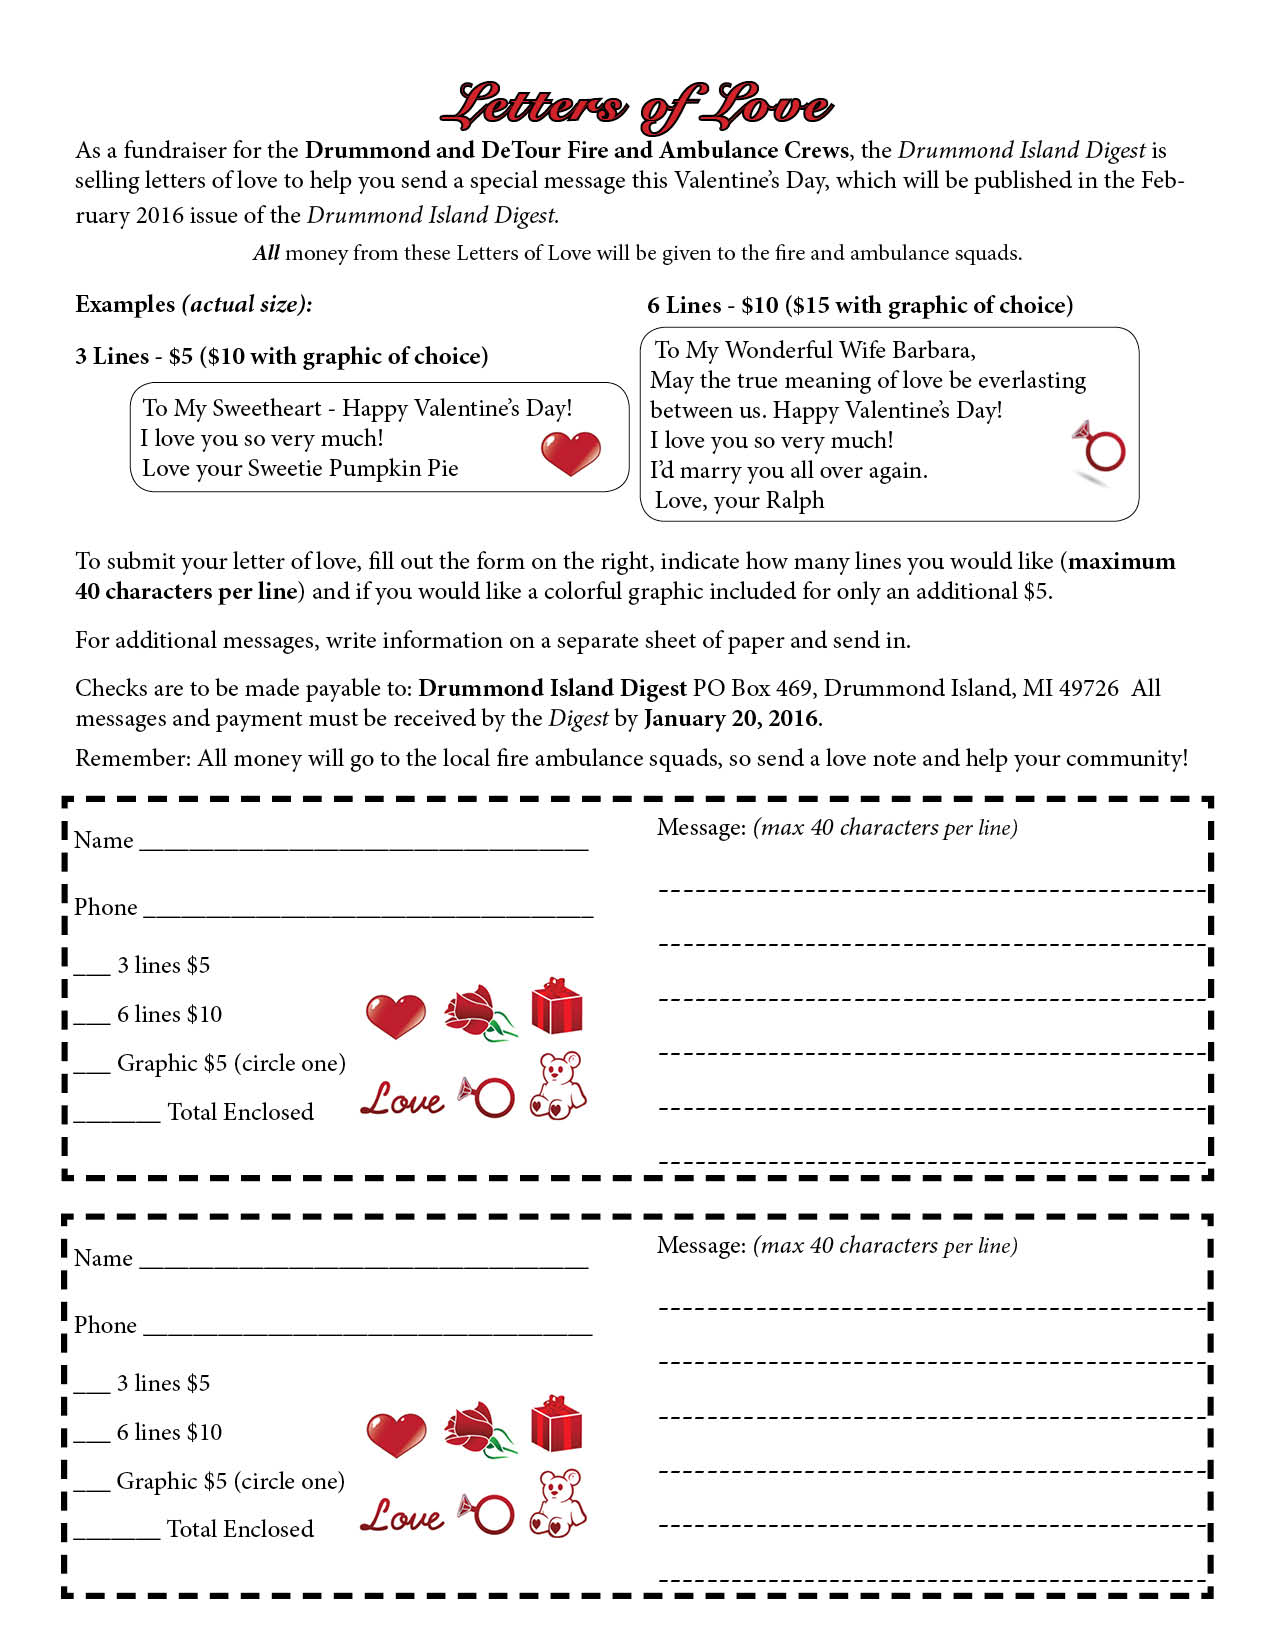 Form for sending in a Letter of Love to appear in the February 2016 issue.